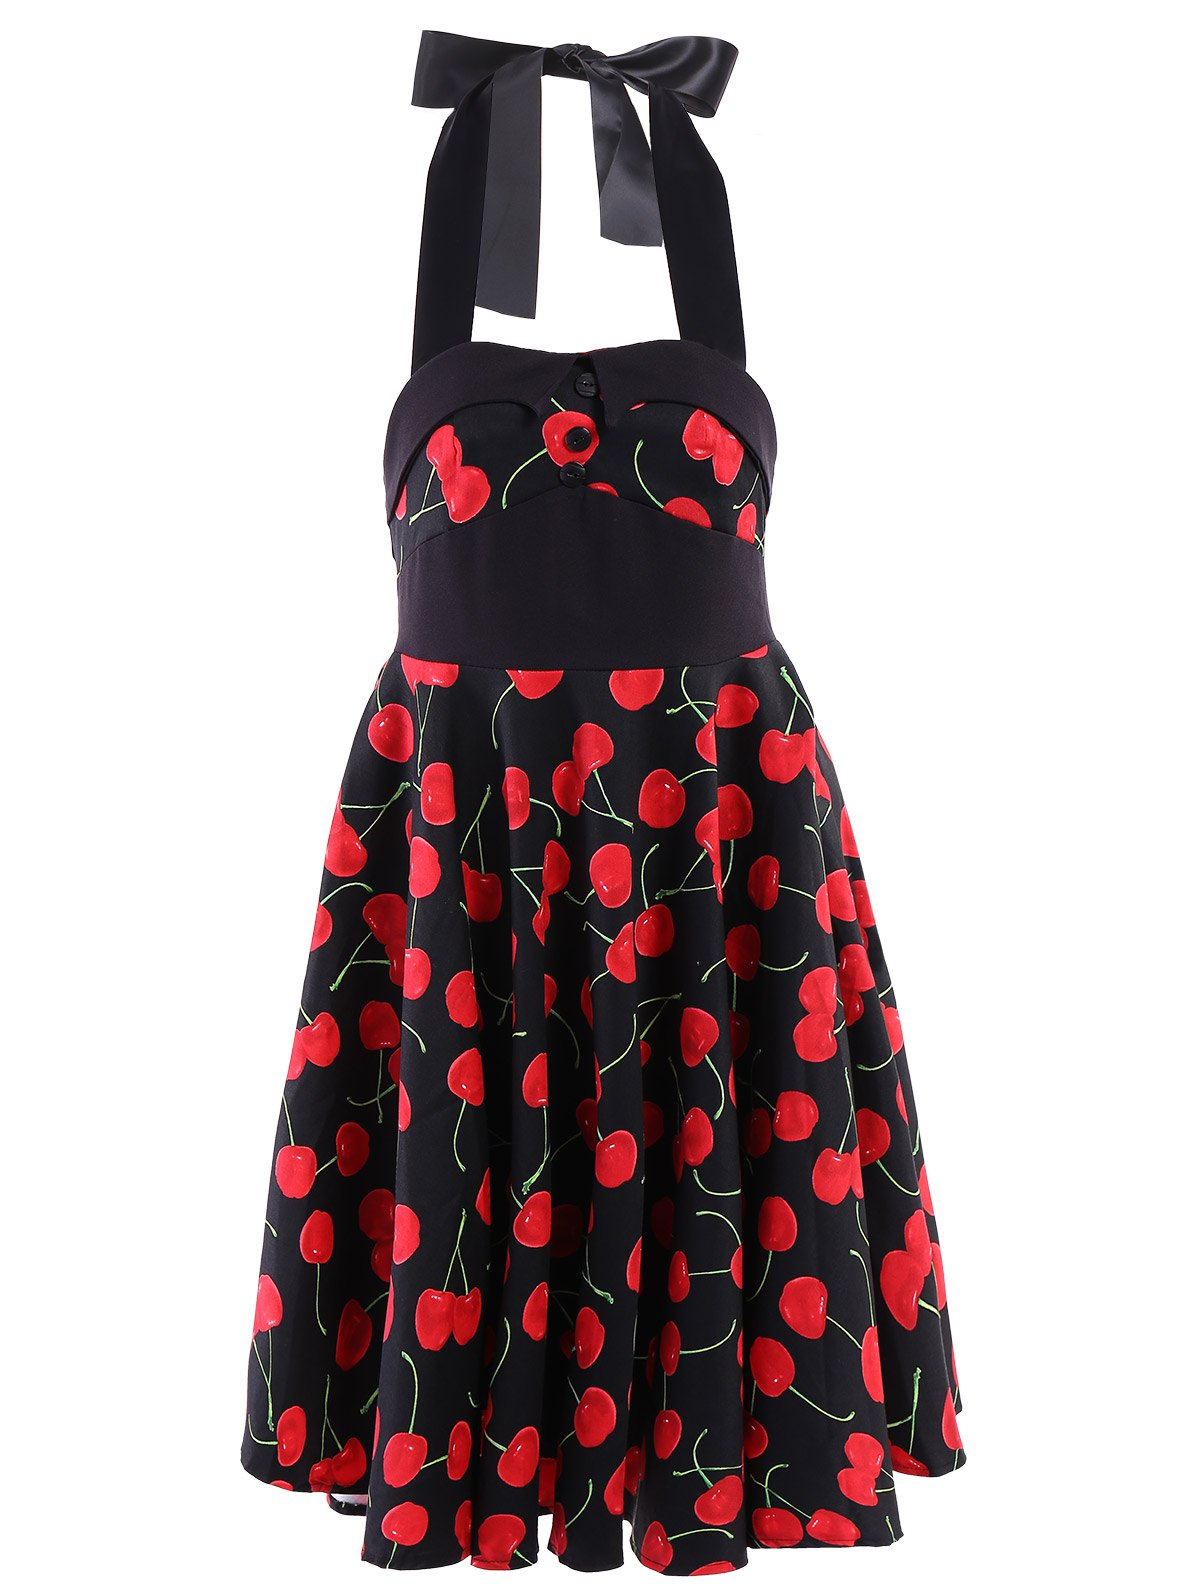 Vintage Women's Halterneck Cherry Print A-Line Dress - RED M